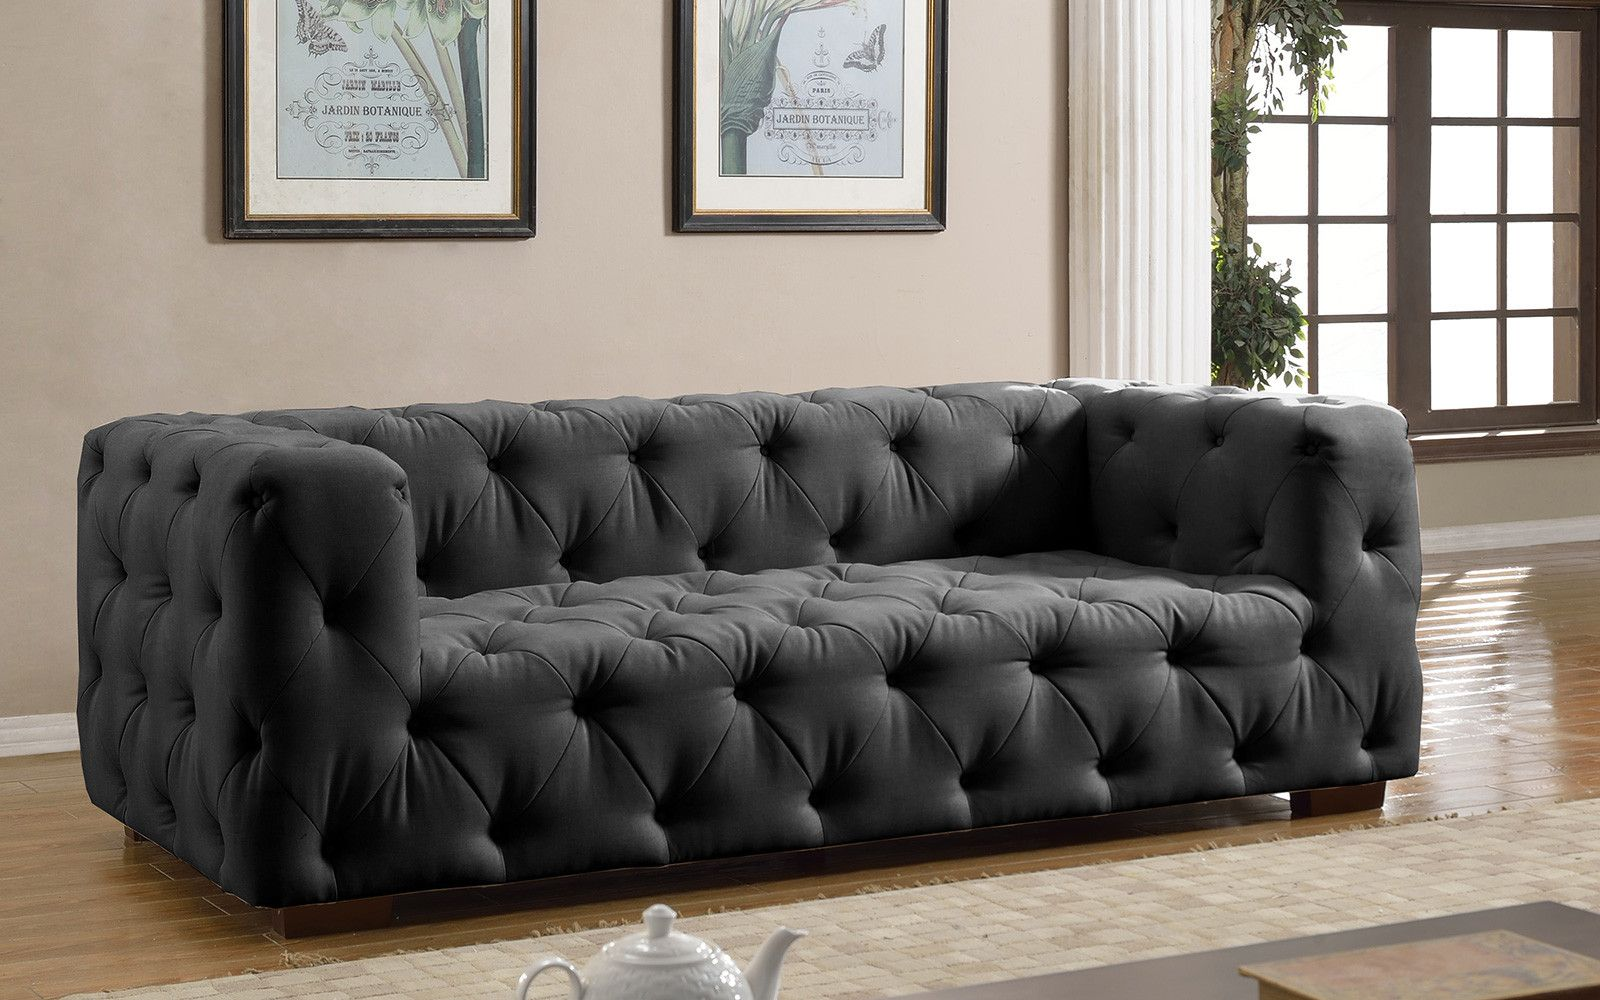 Luxurious Modern Dark Grey Tufted Sofa | Sofa Mania